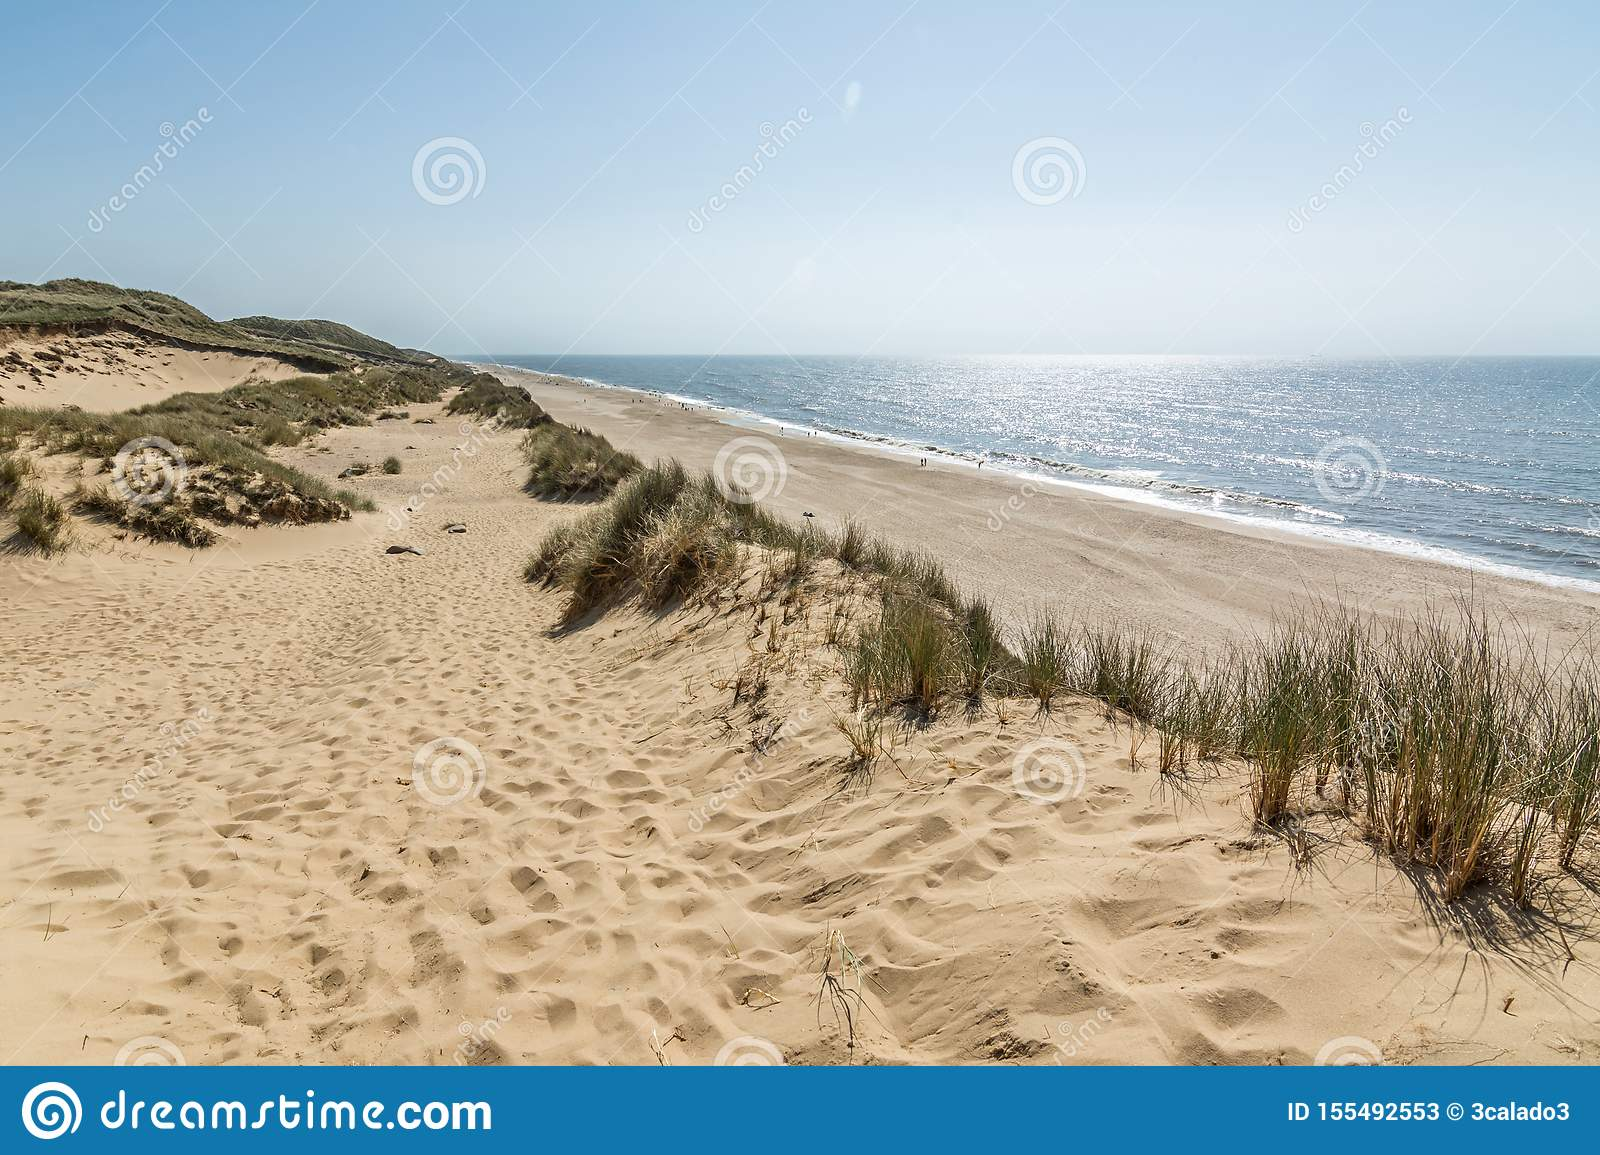 Hiking Trail In Beautiful Dune Landscape With Beach And Ocean In